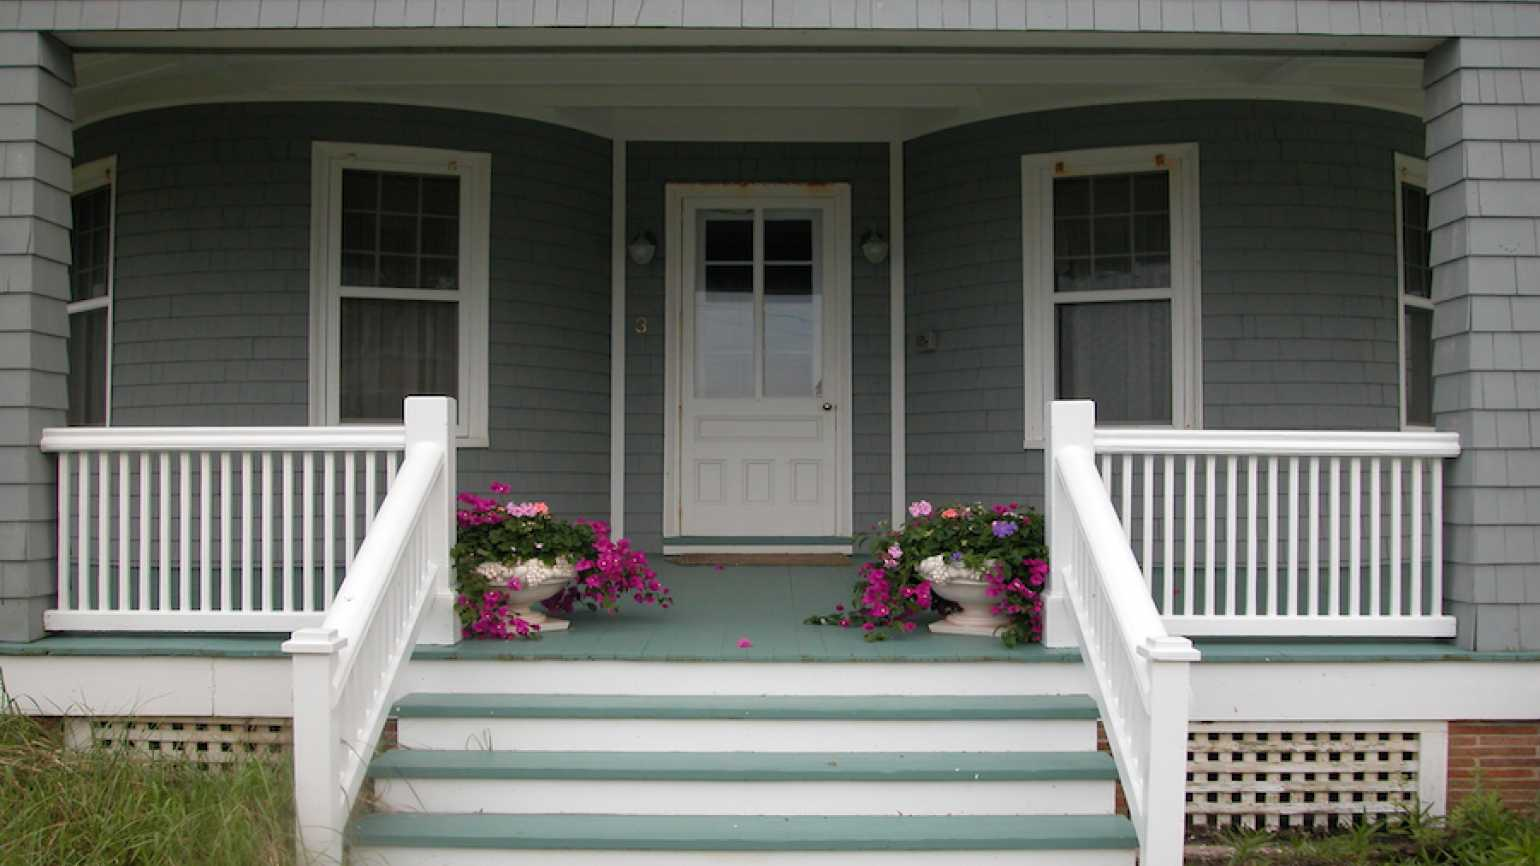 Porch steps. Thinkstock.